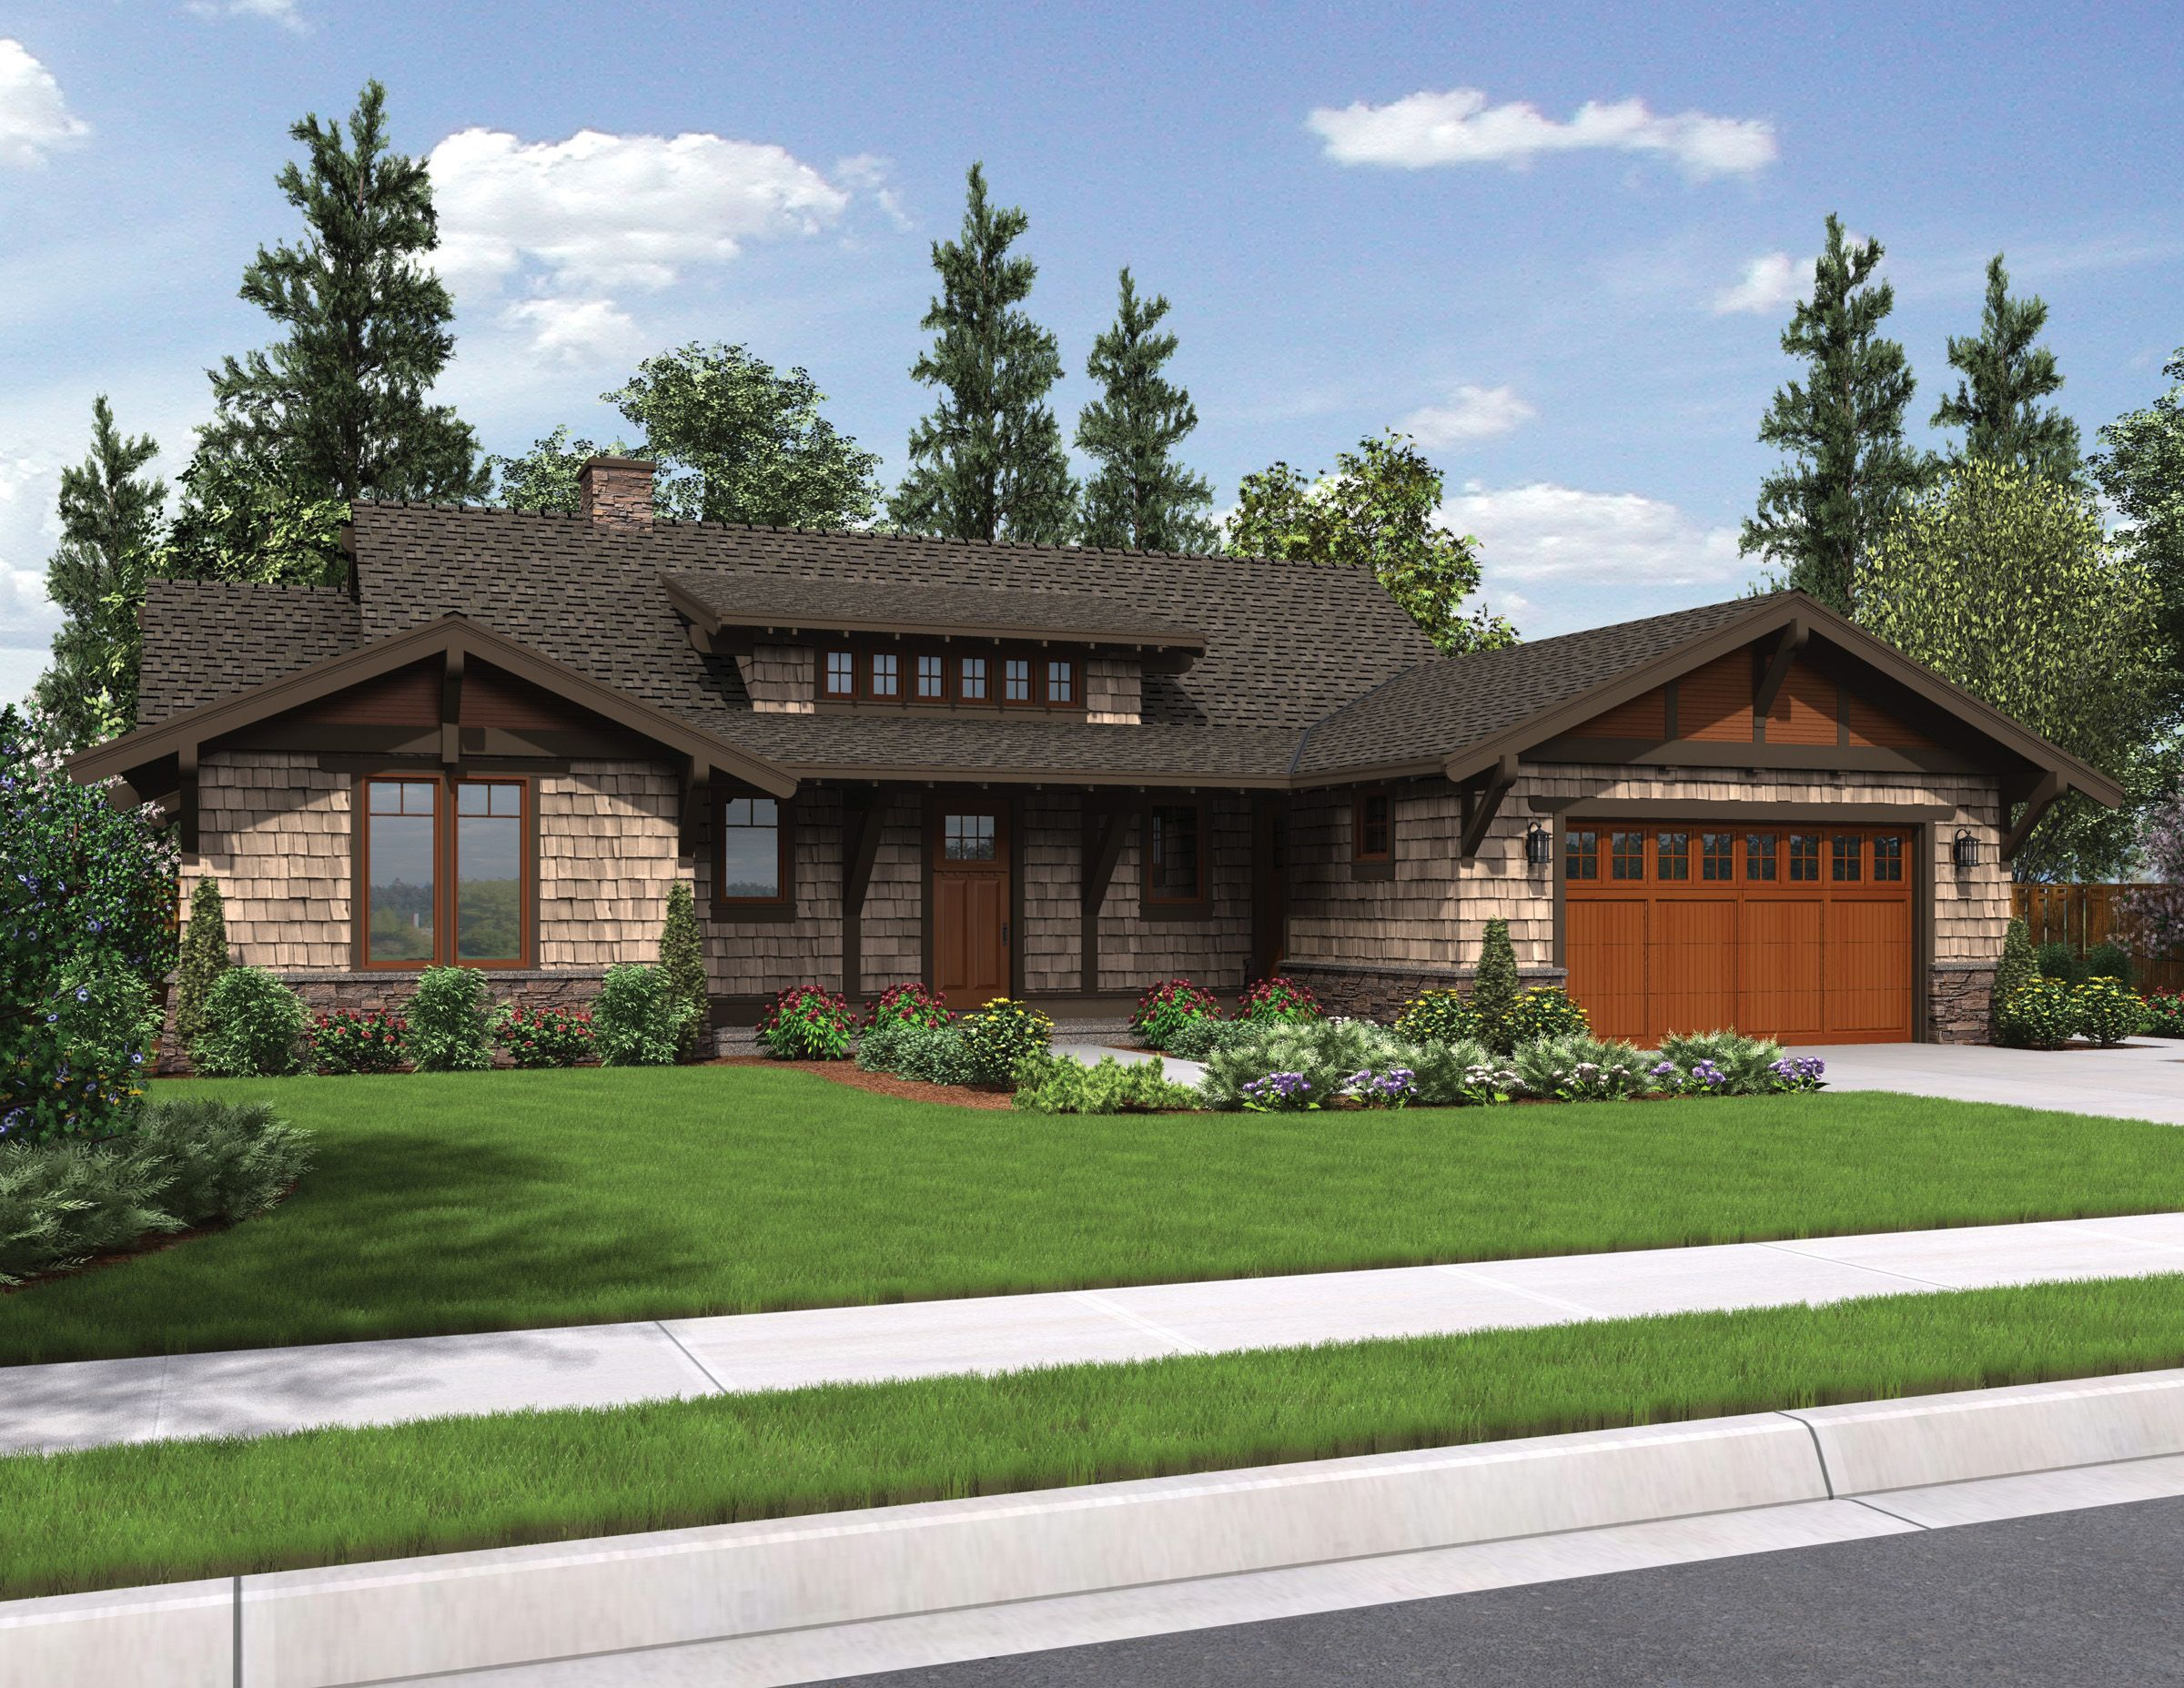 plan 69545am rustic craftsman with shed dormer craftsman open plan 69545am rustic craftsman with shed dormer